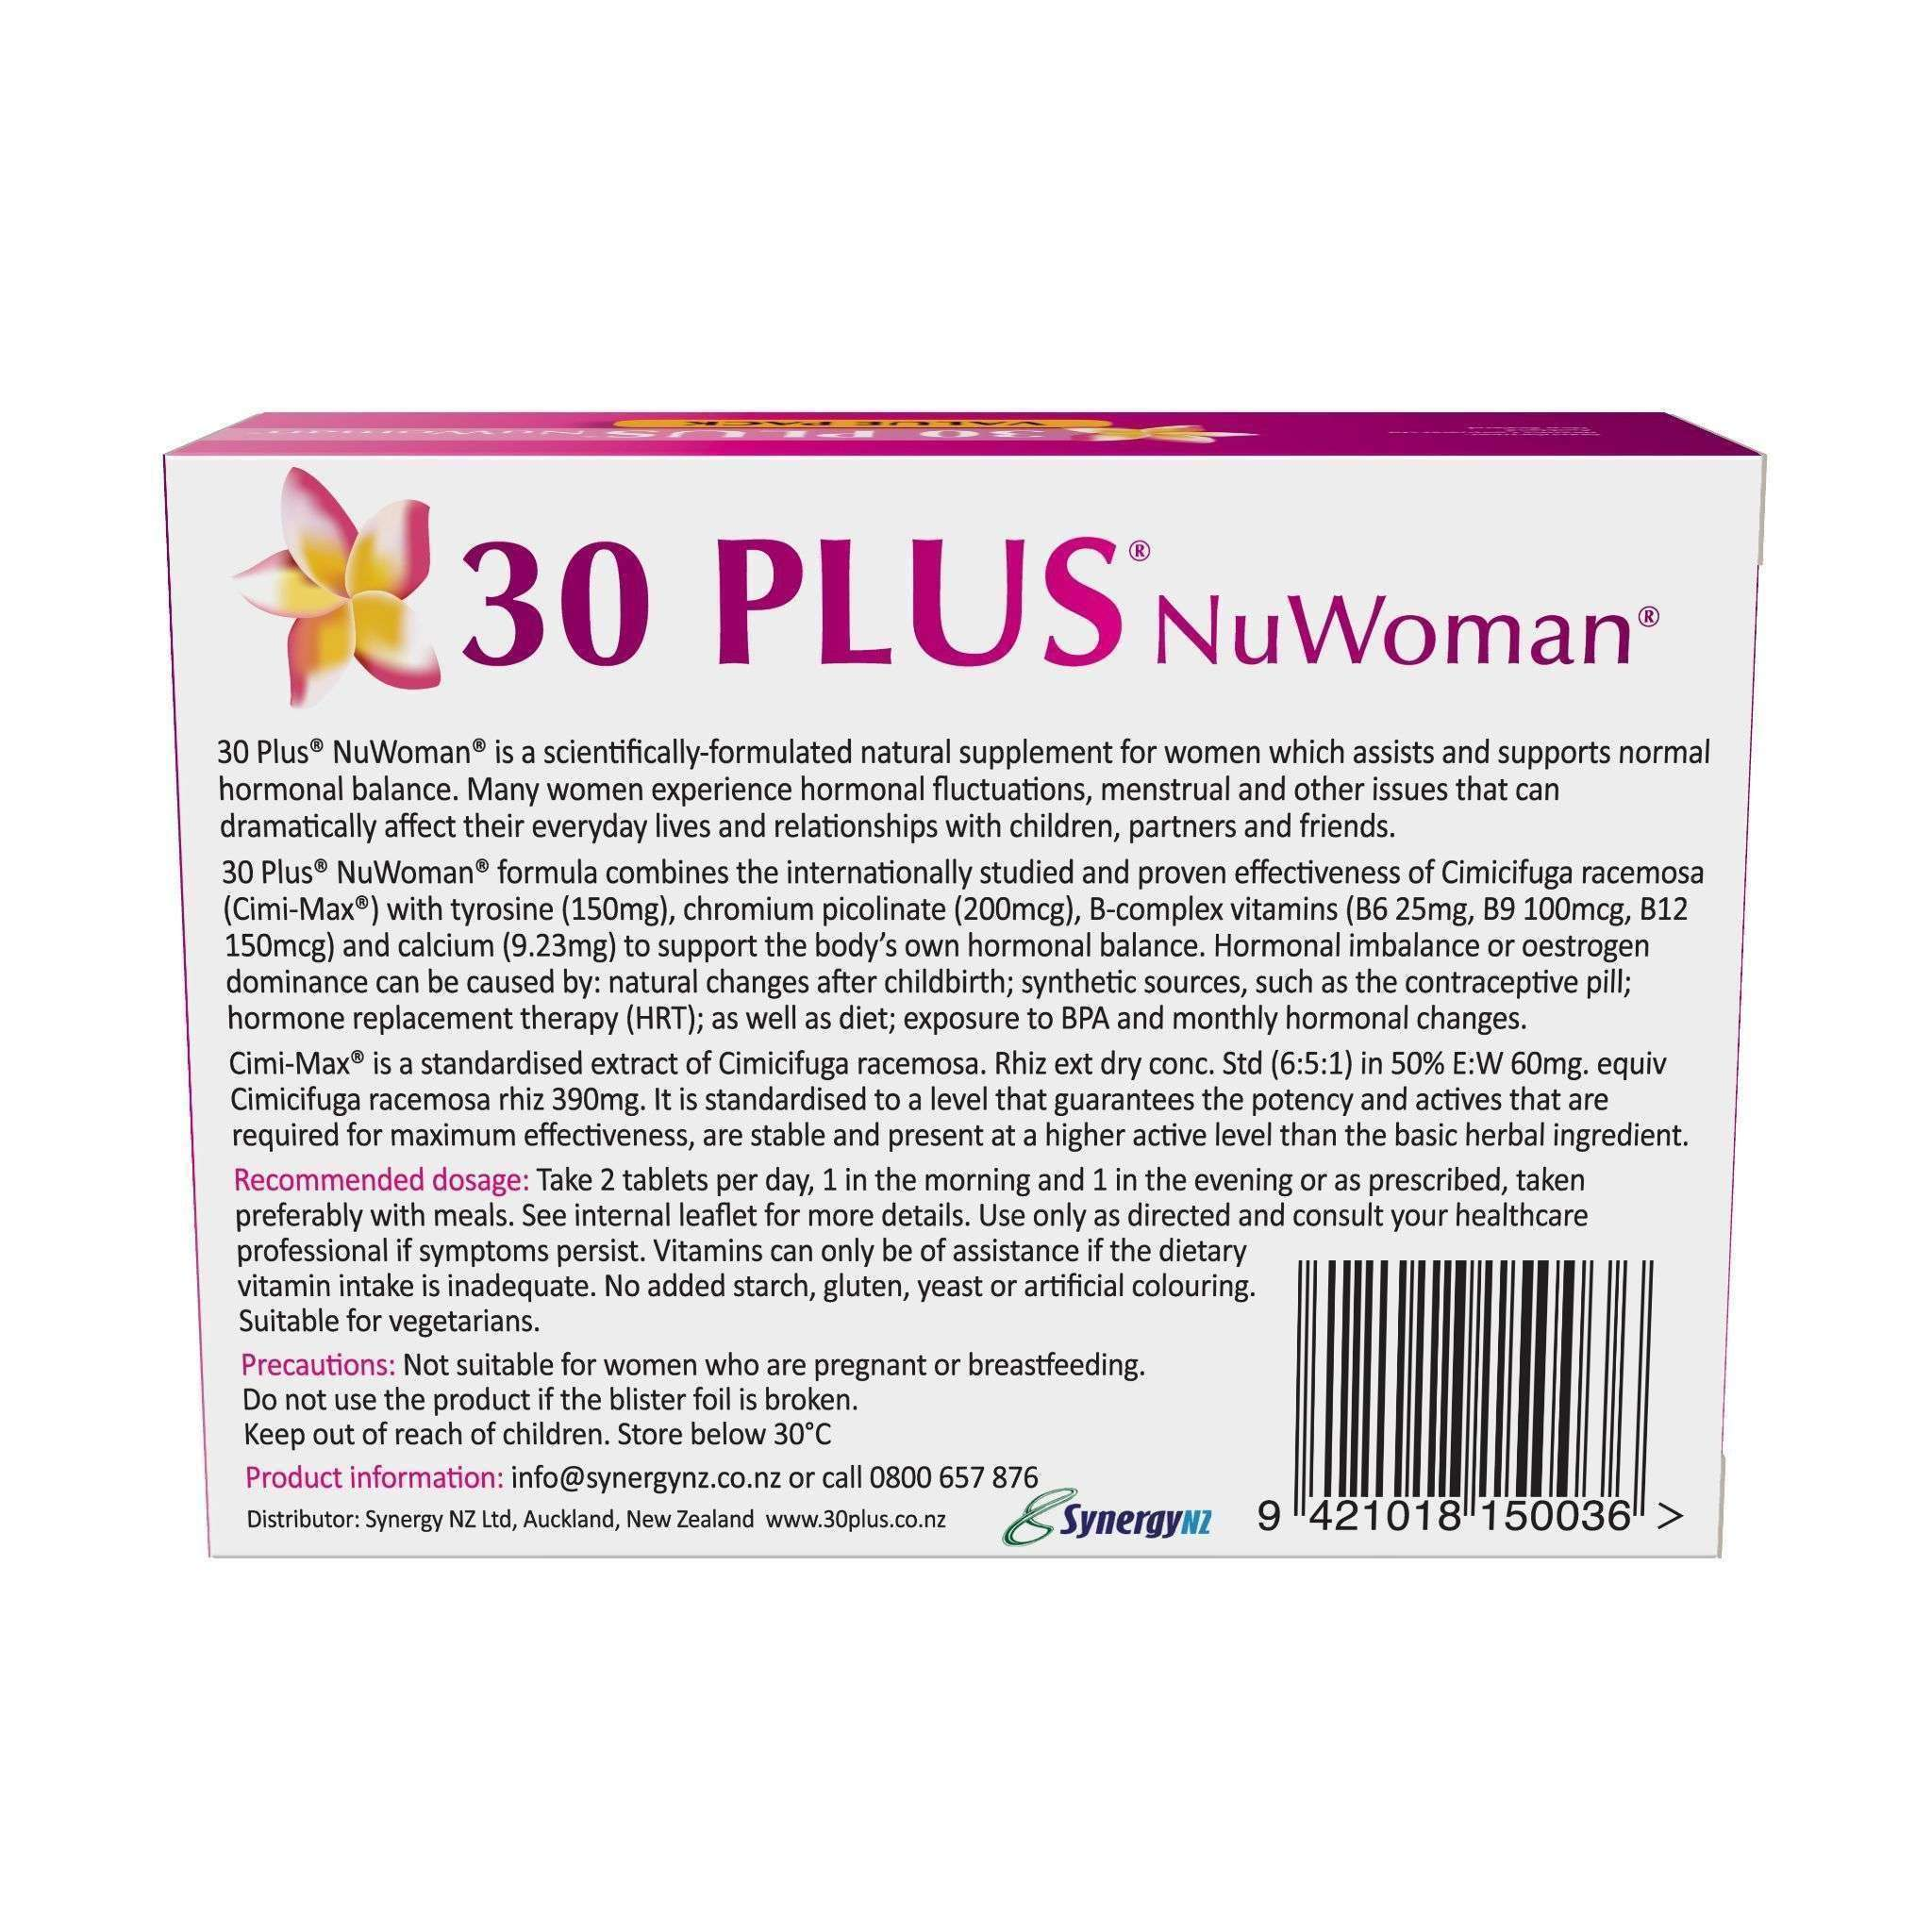 NuWoman 30 PLUS Natural Hormone Balance Support